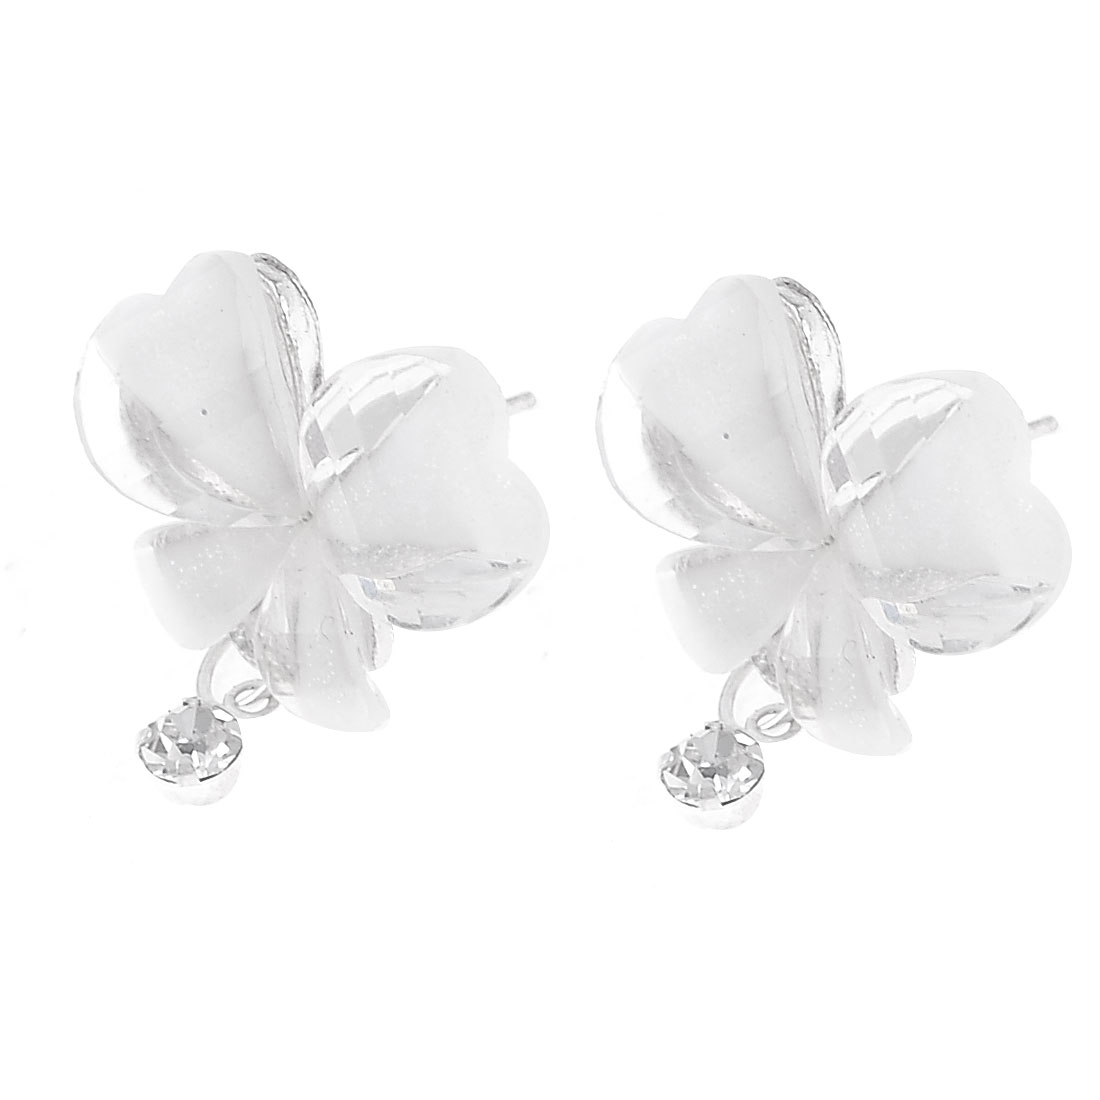 Pair Clear Flower Decor Metal Stud Bobs Earrings for Ladies